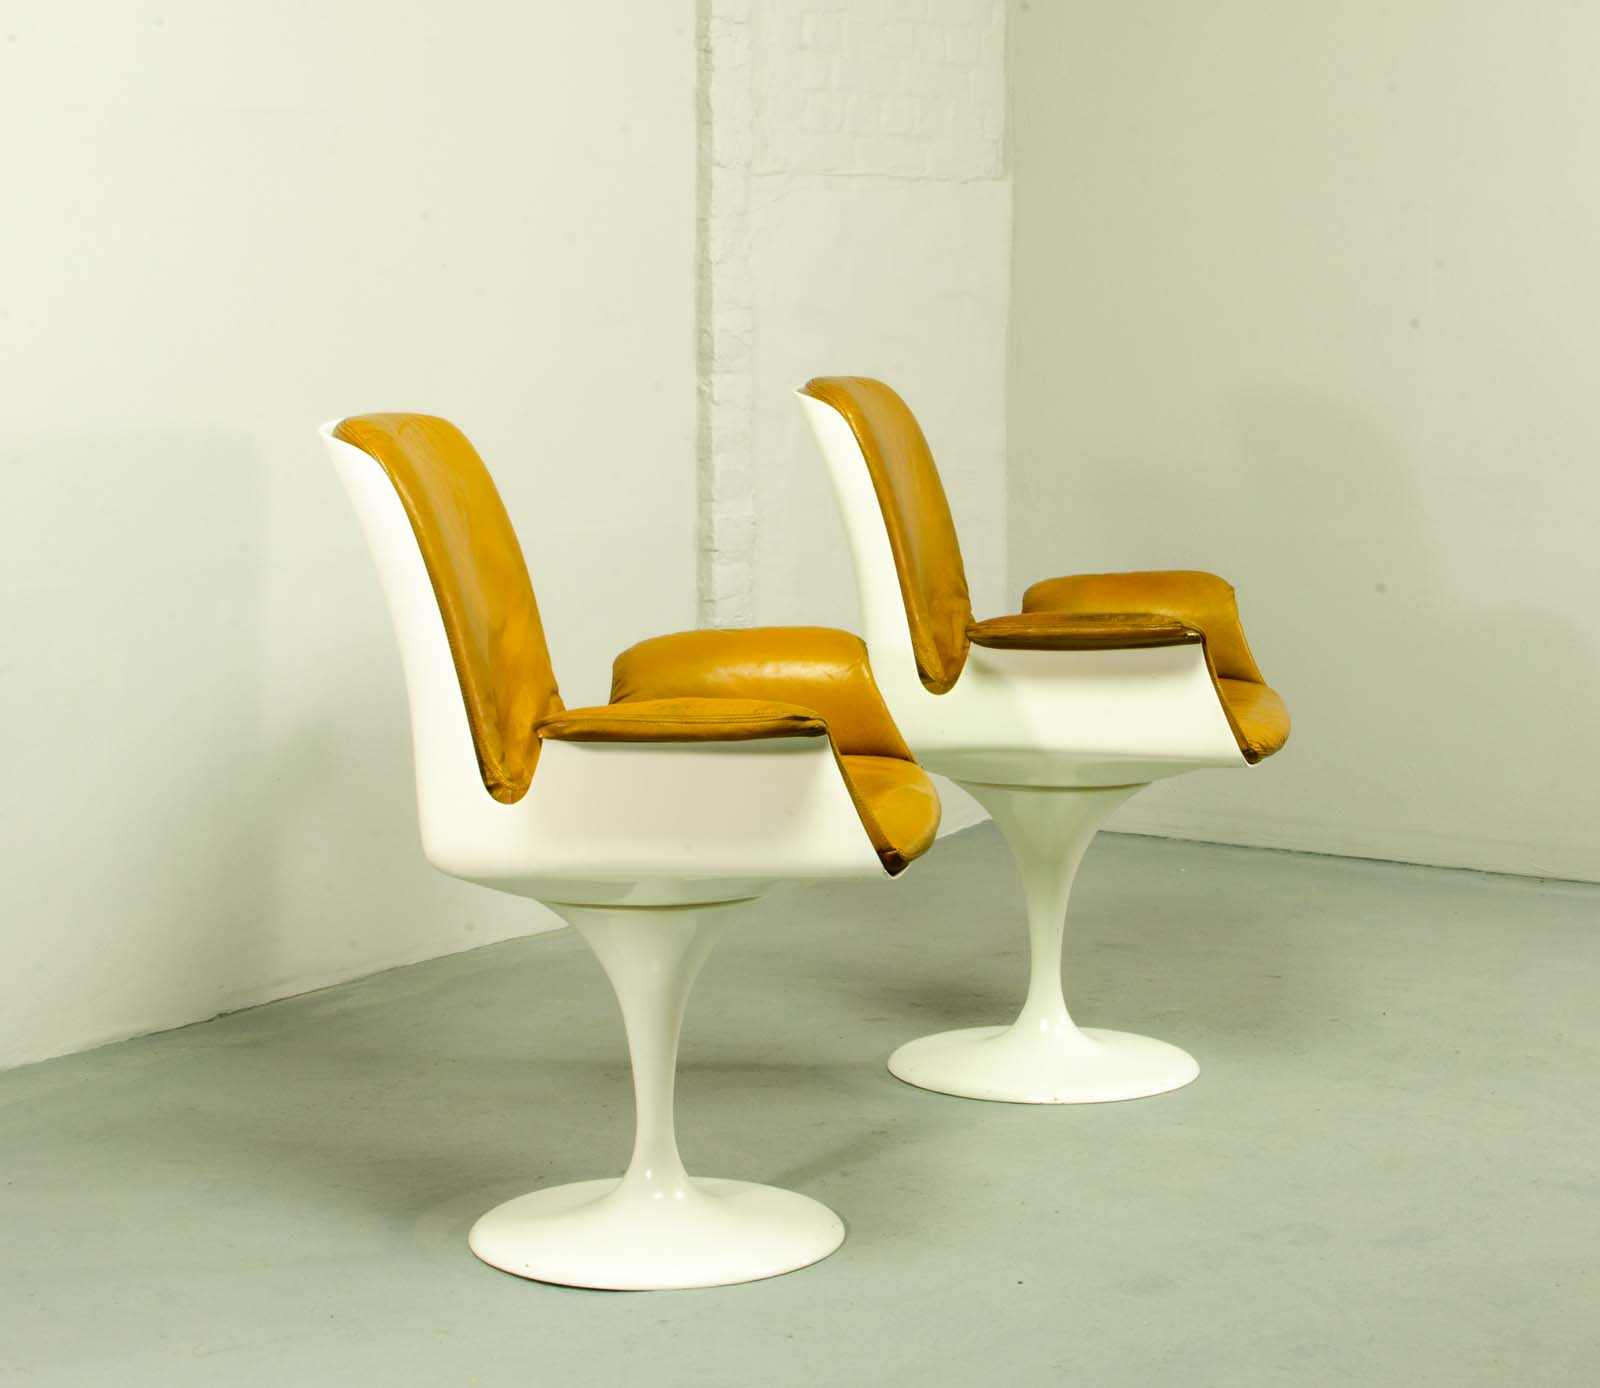 MidCentury Tulip Swivel Chairs with Armrests in Style of Eero